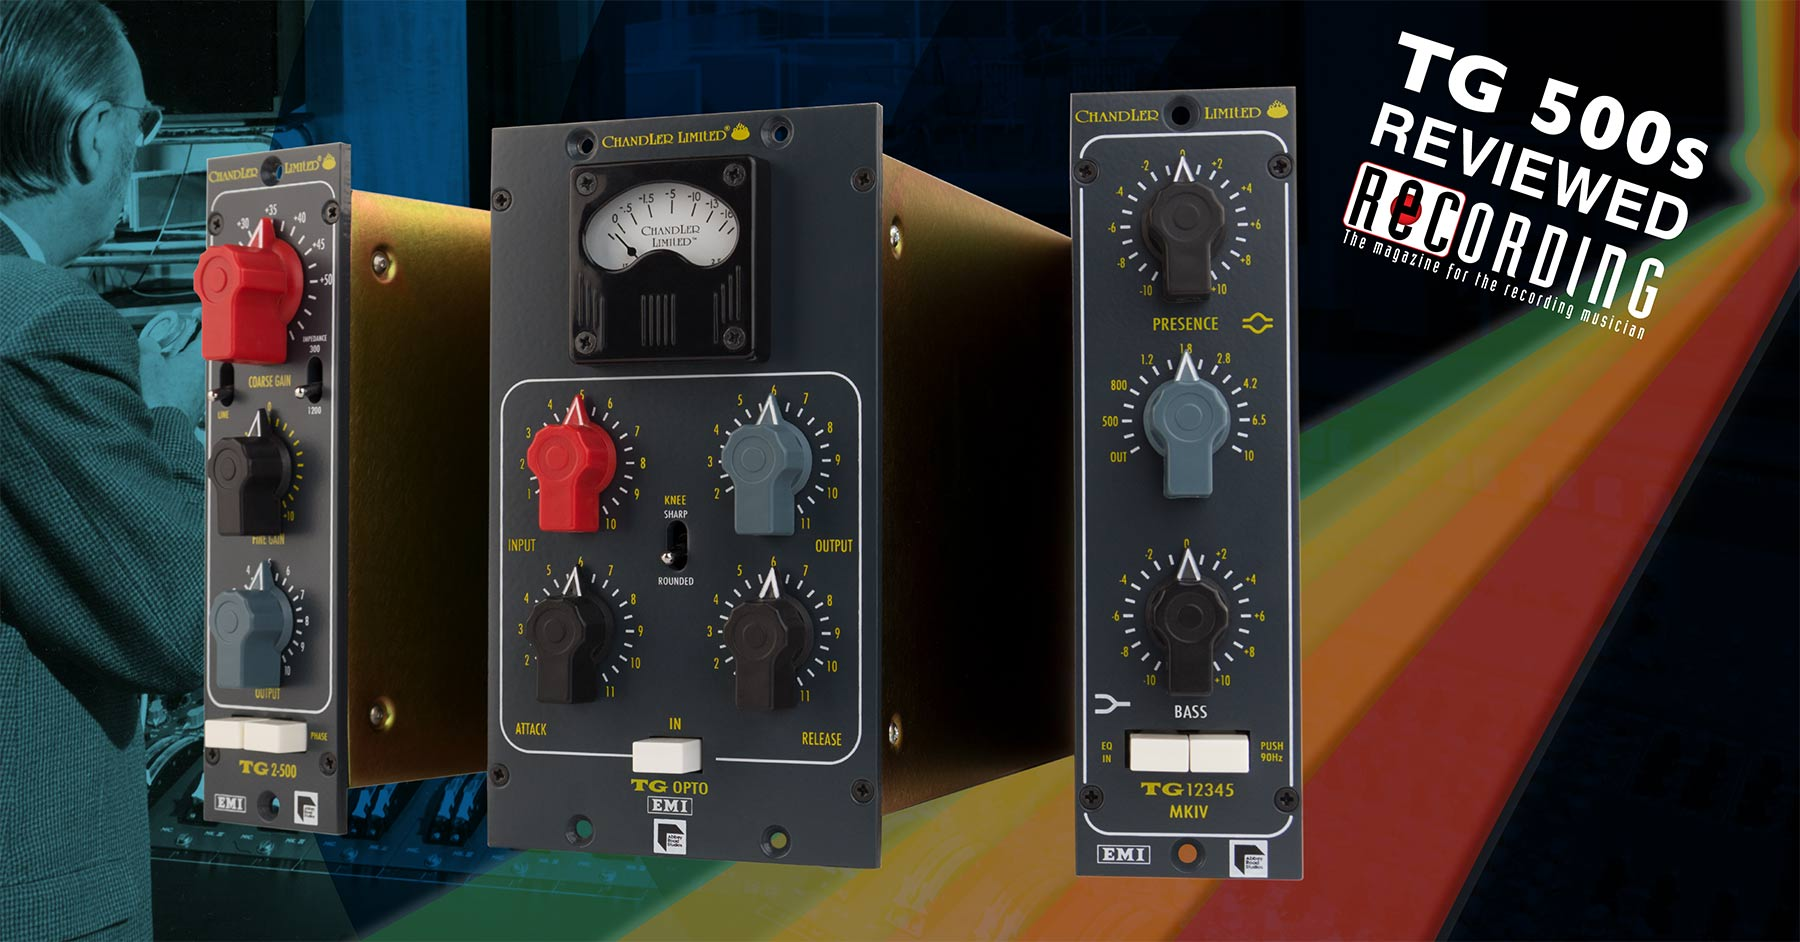 Chandler Limited Abbey Road TG12345 MKIV EQ and TG Opto Compressor